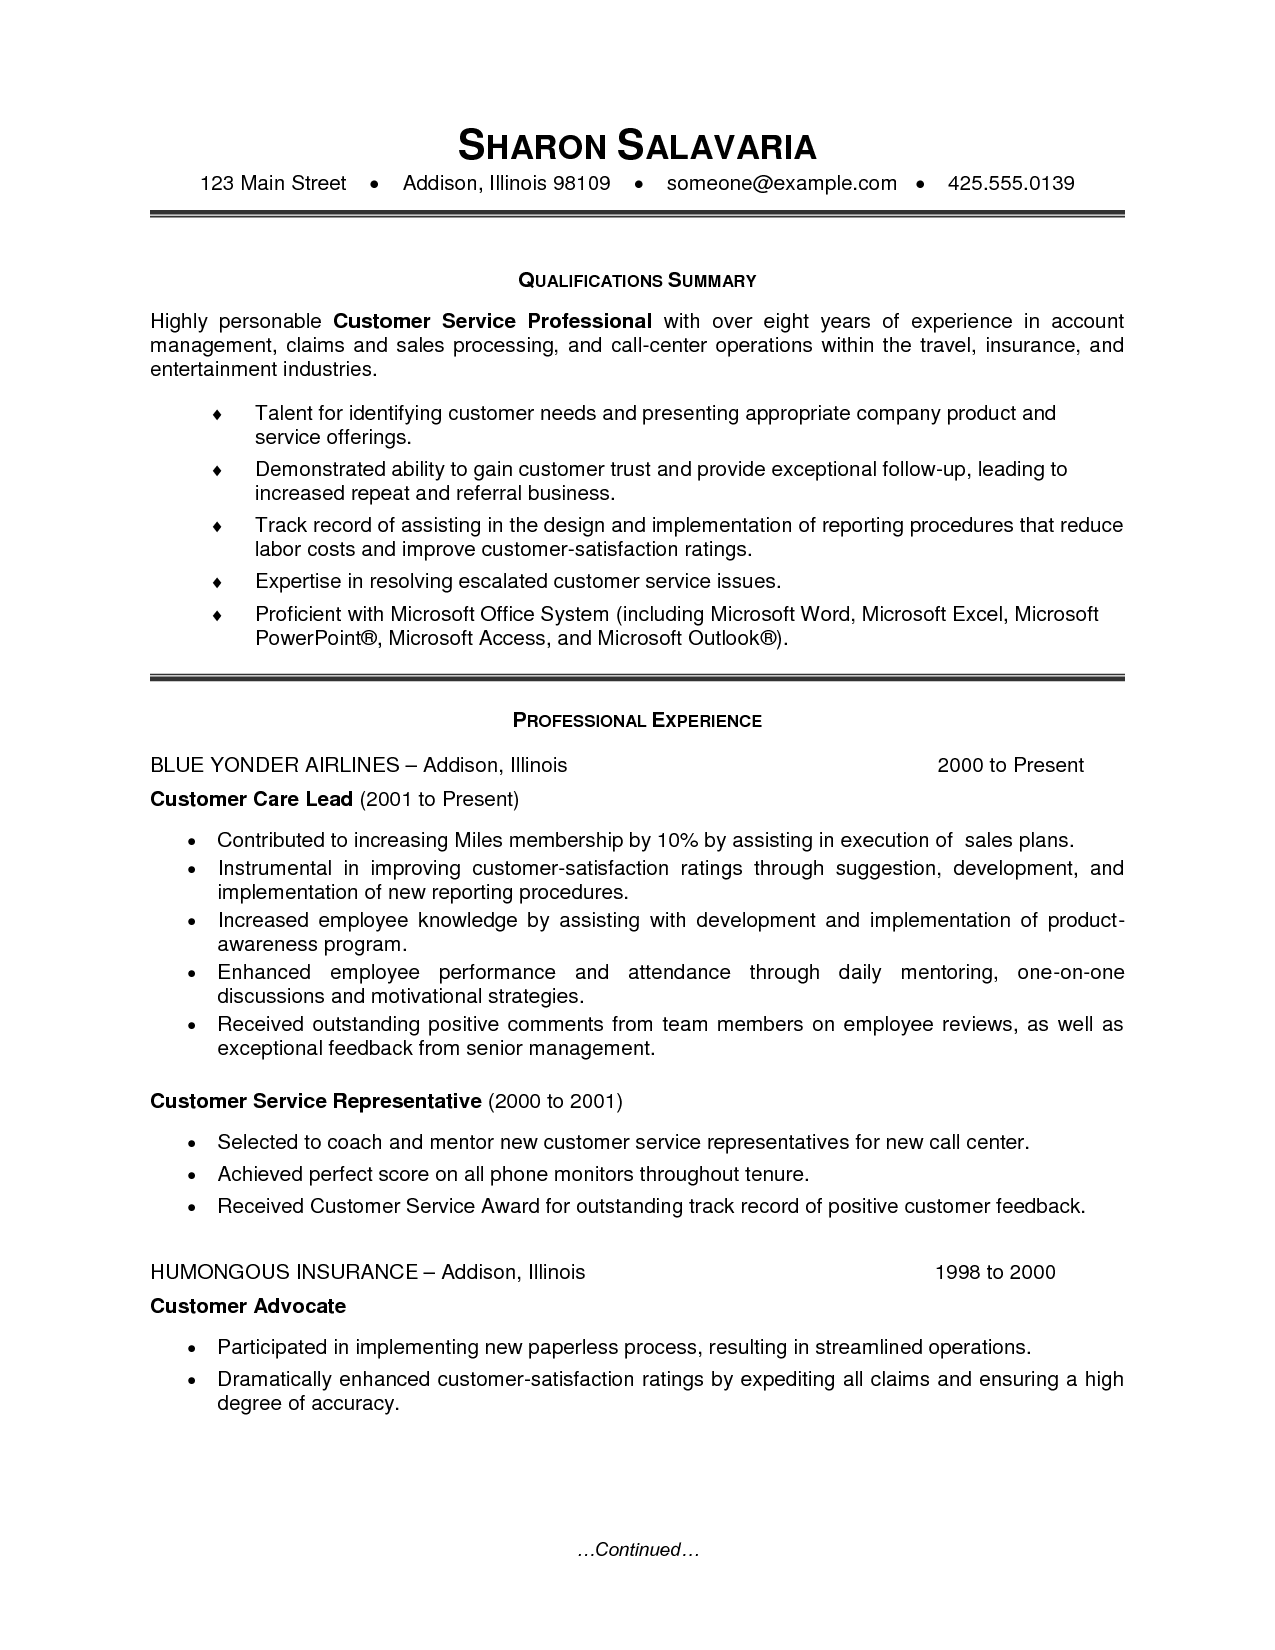 resume for insurance insurance advisor cover letter marketing